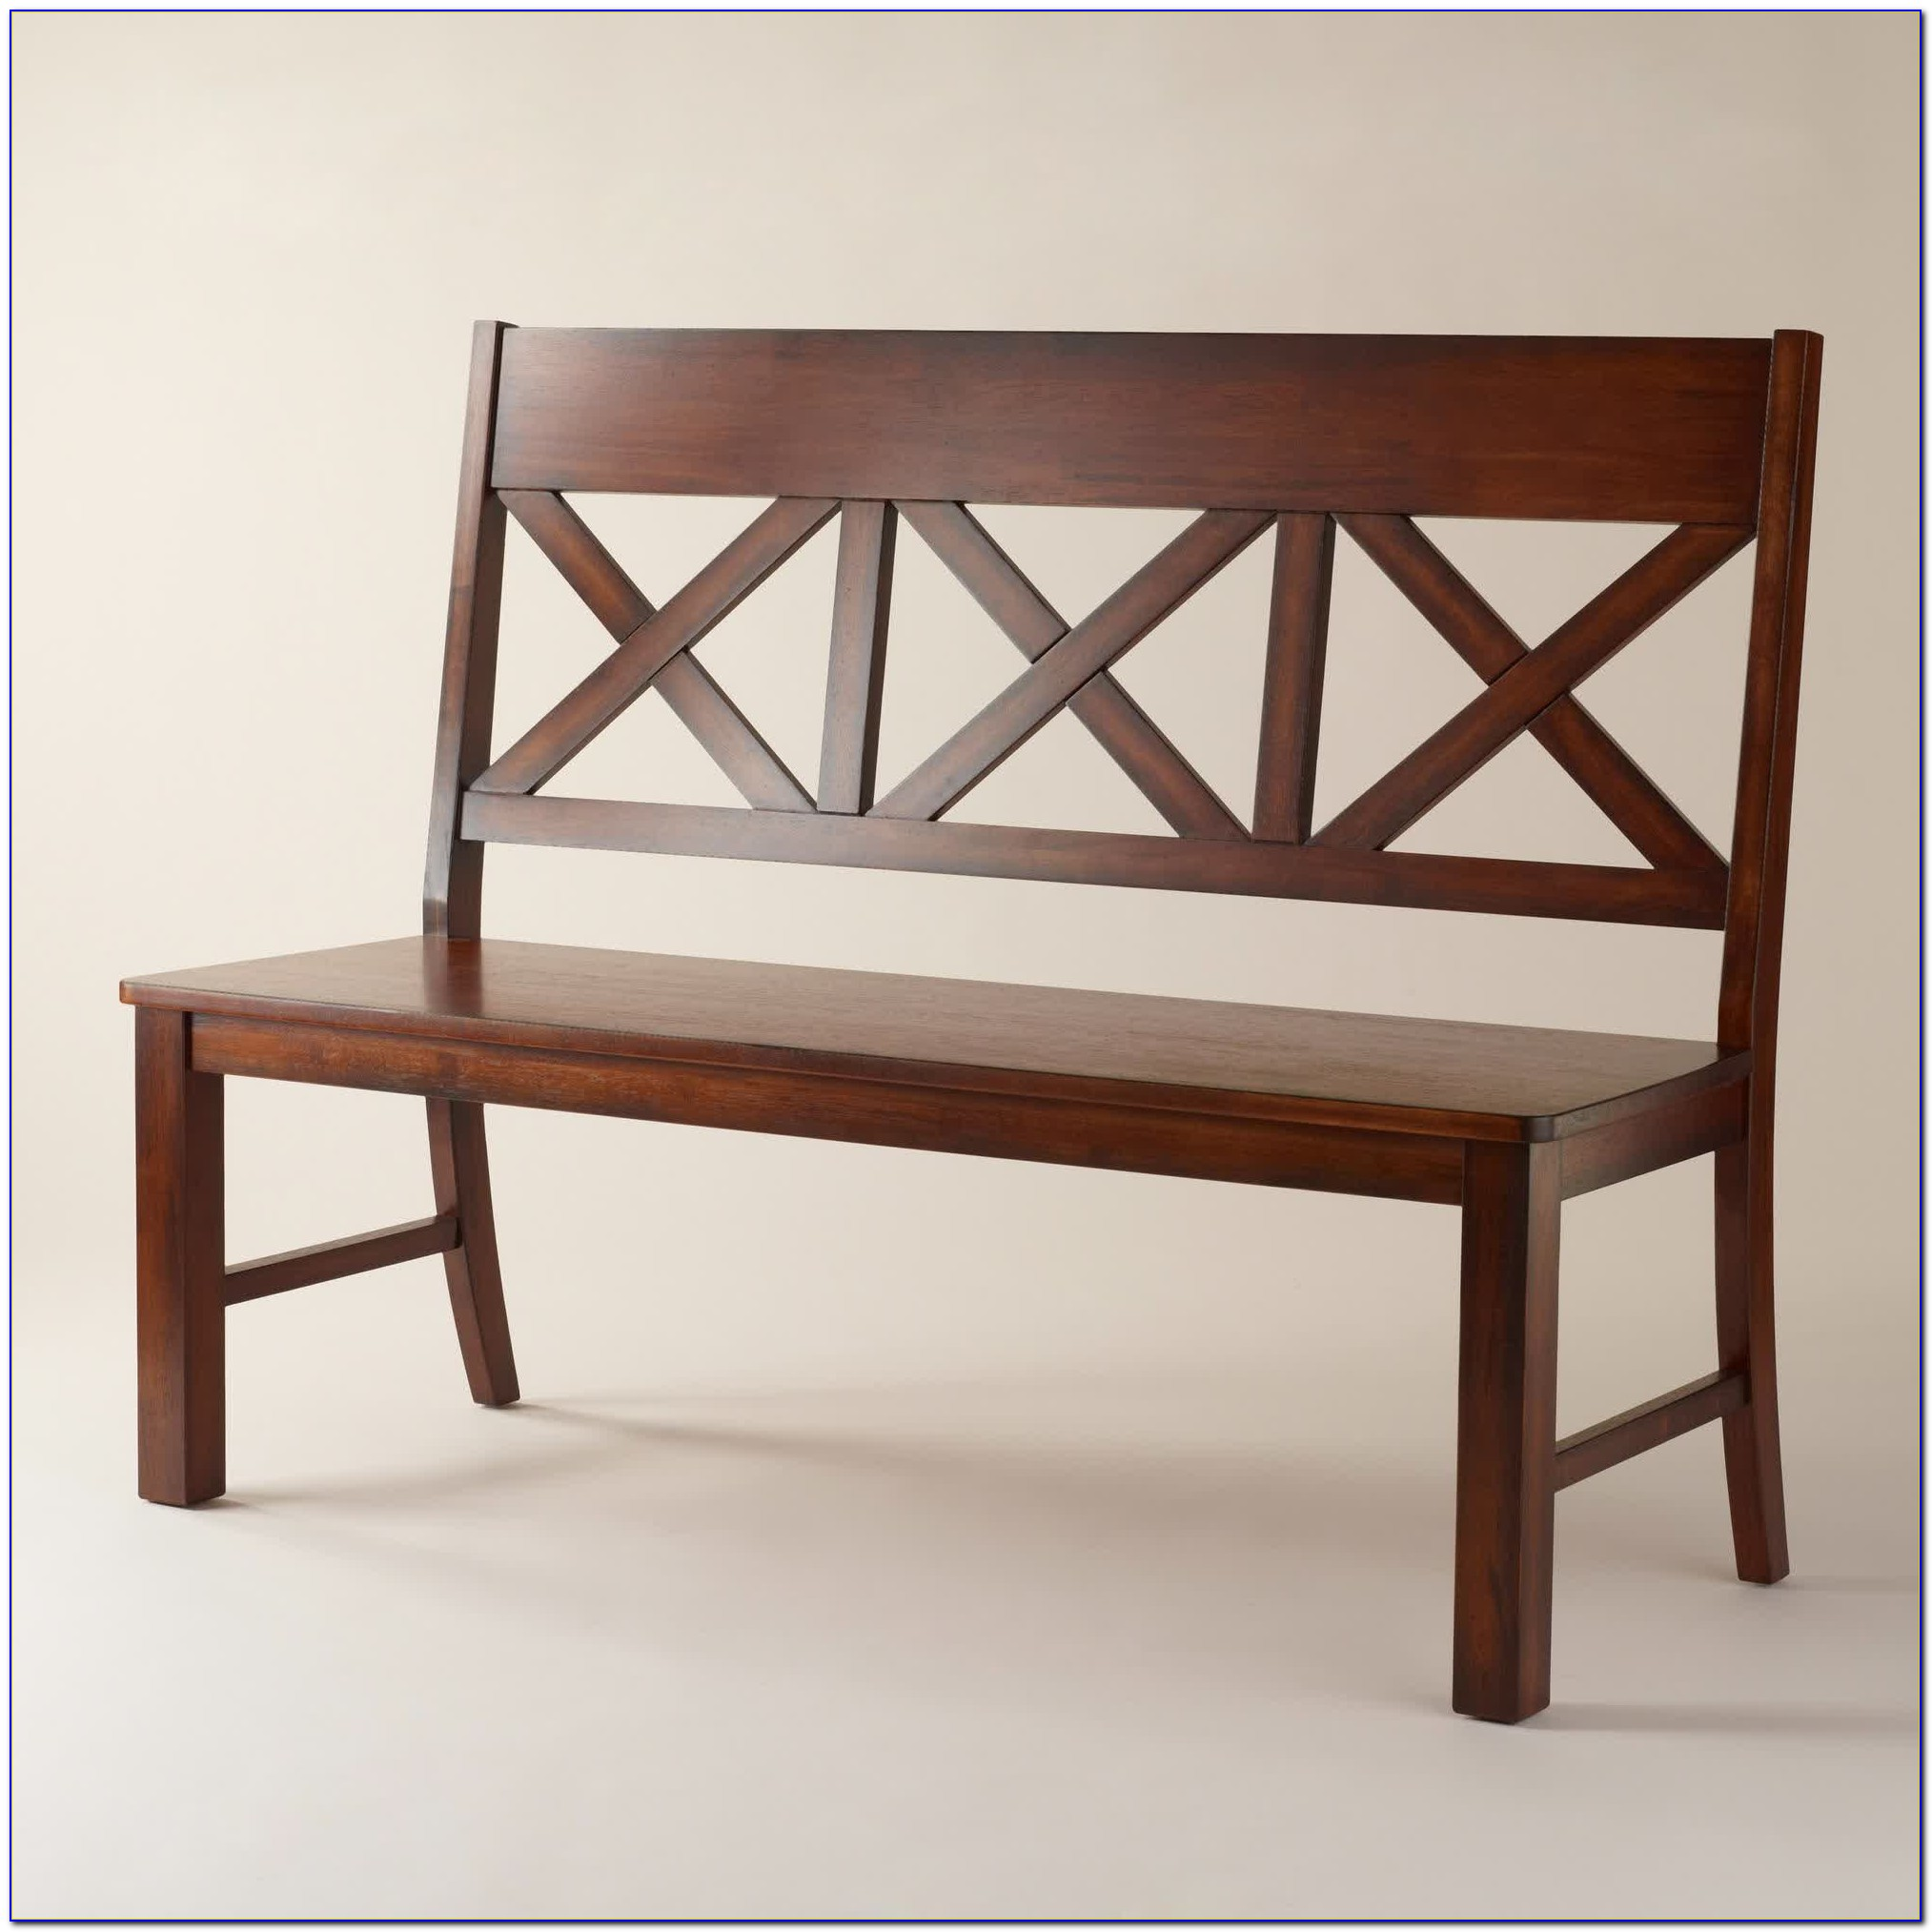 Upholstered Bench With Back For Dining Table